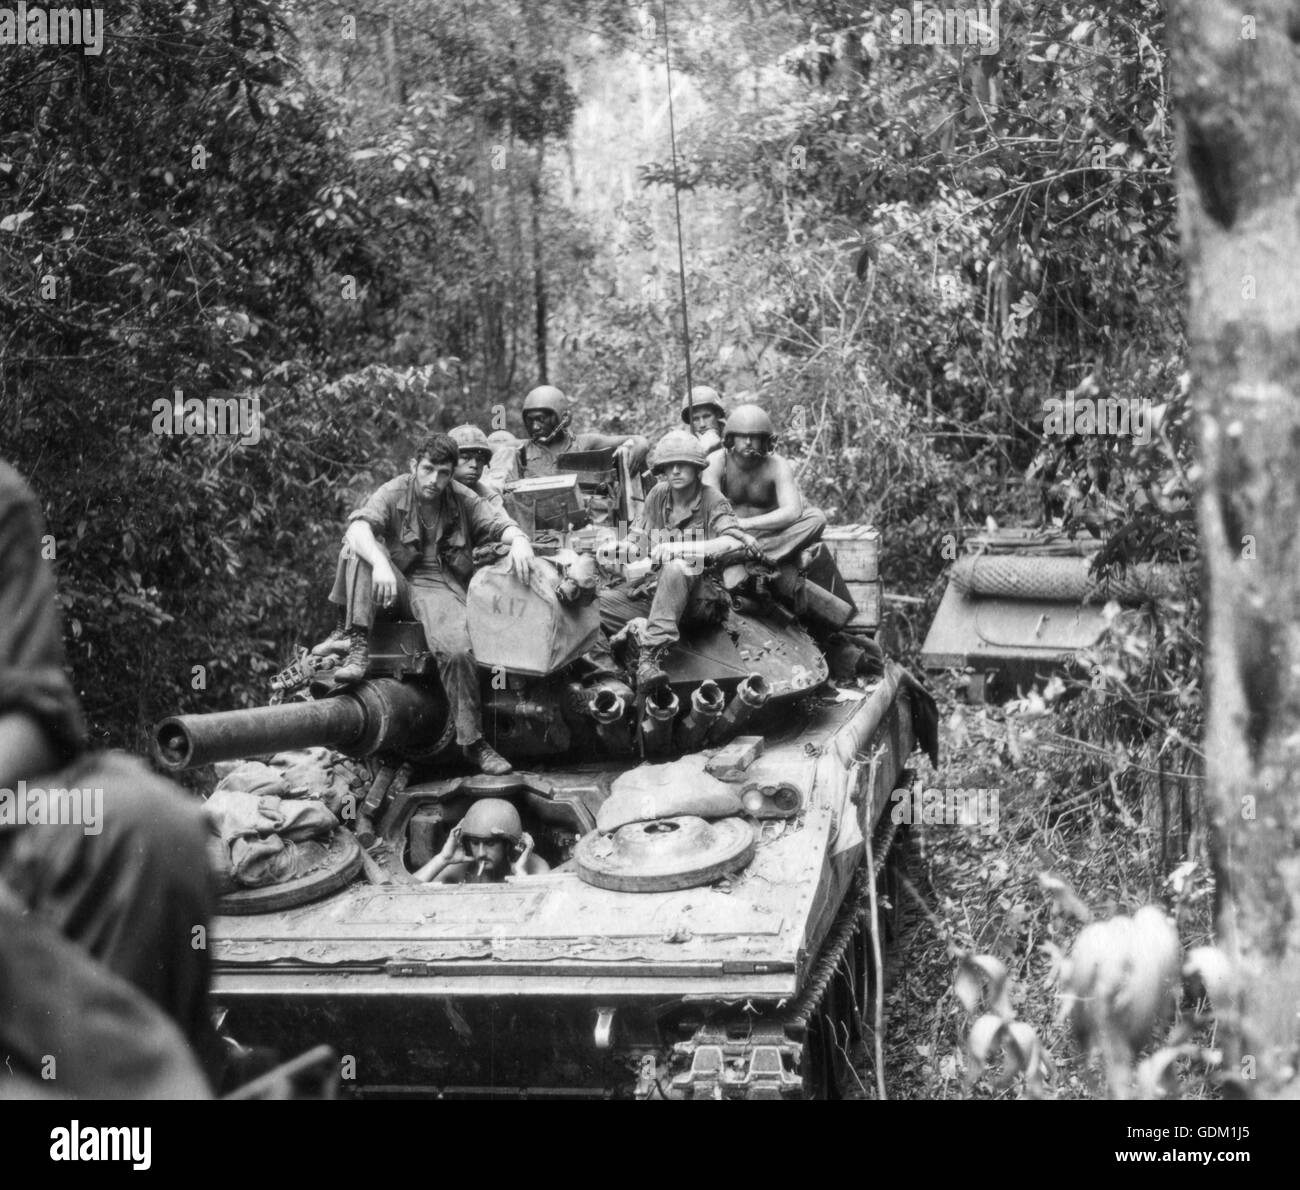 Vietnam War 1954-1975 Troops-from-the-25th-inf-div-on-a-sweep-through-the-cambodian-jungle-GDM1J5